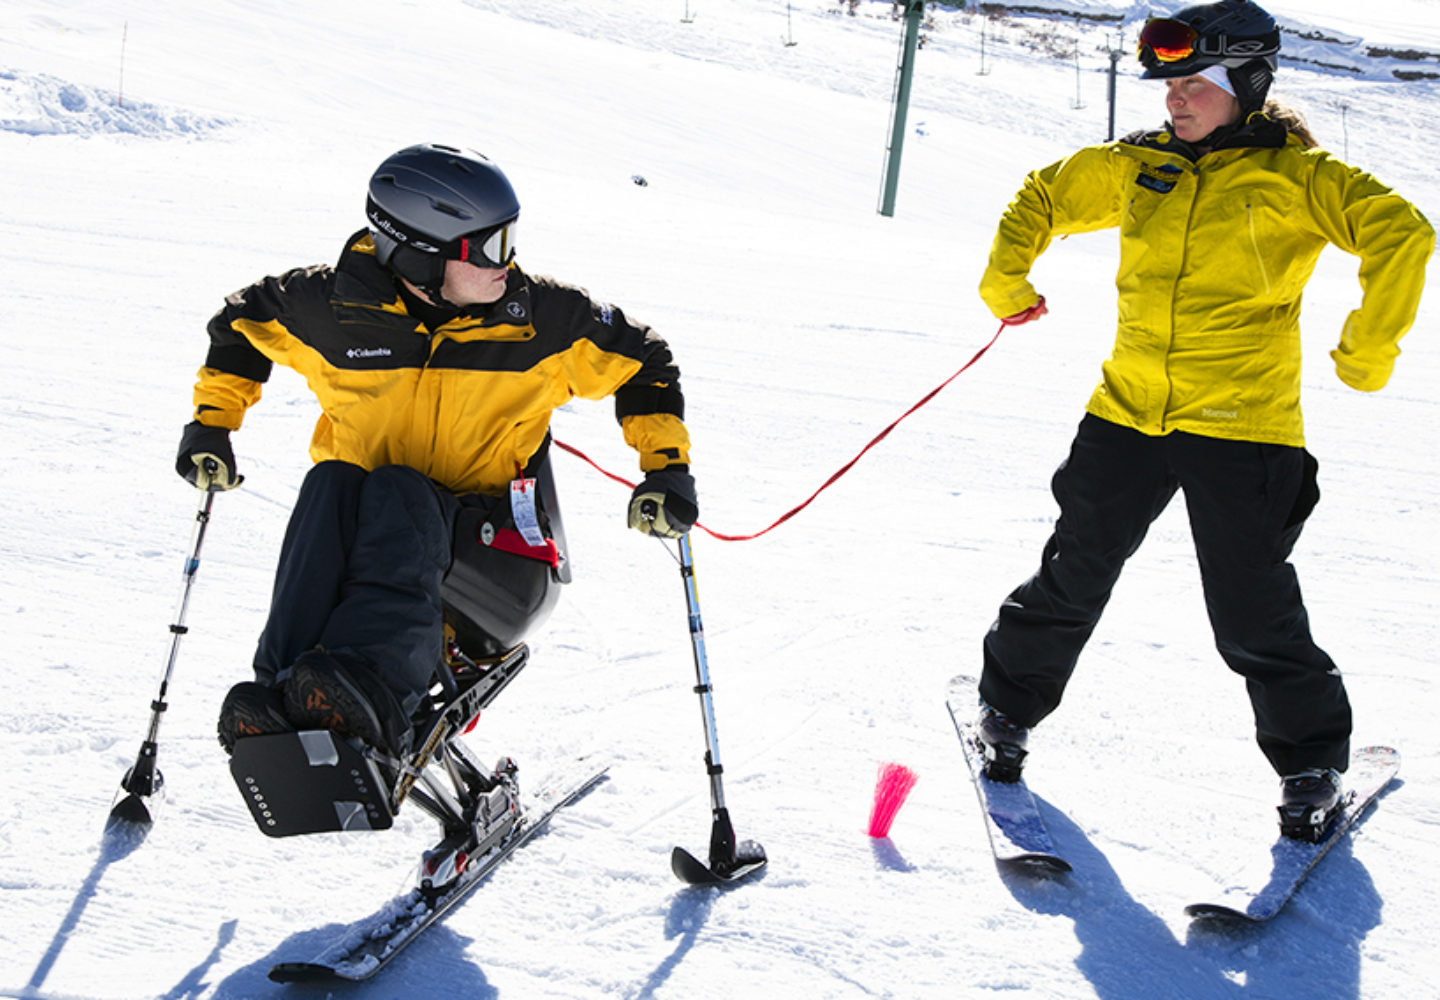 Dr. Thomas Balazy skis at 2018 Wells Fargo Cup where Craig Hospital announces partnership with NSCD to promote adaptive sports and recreation opportunities for community.